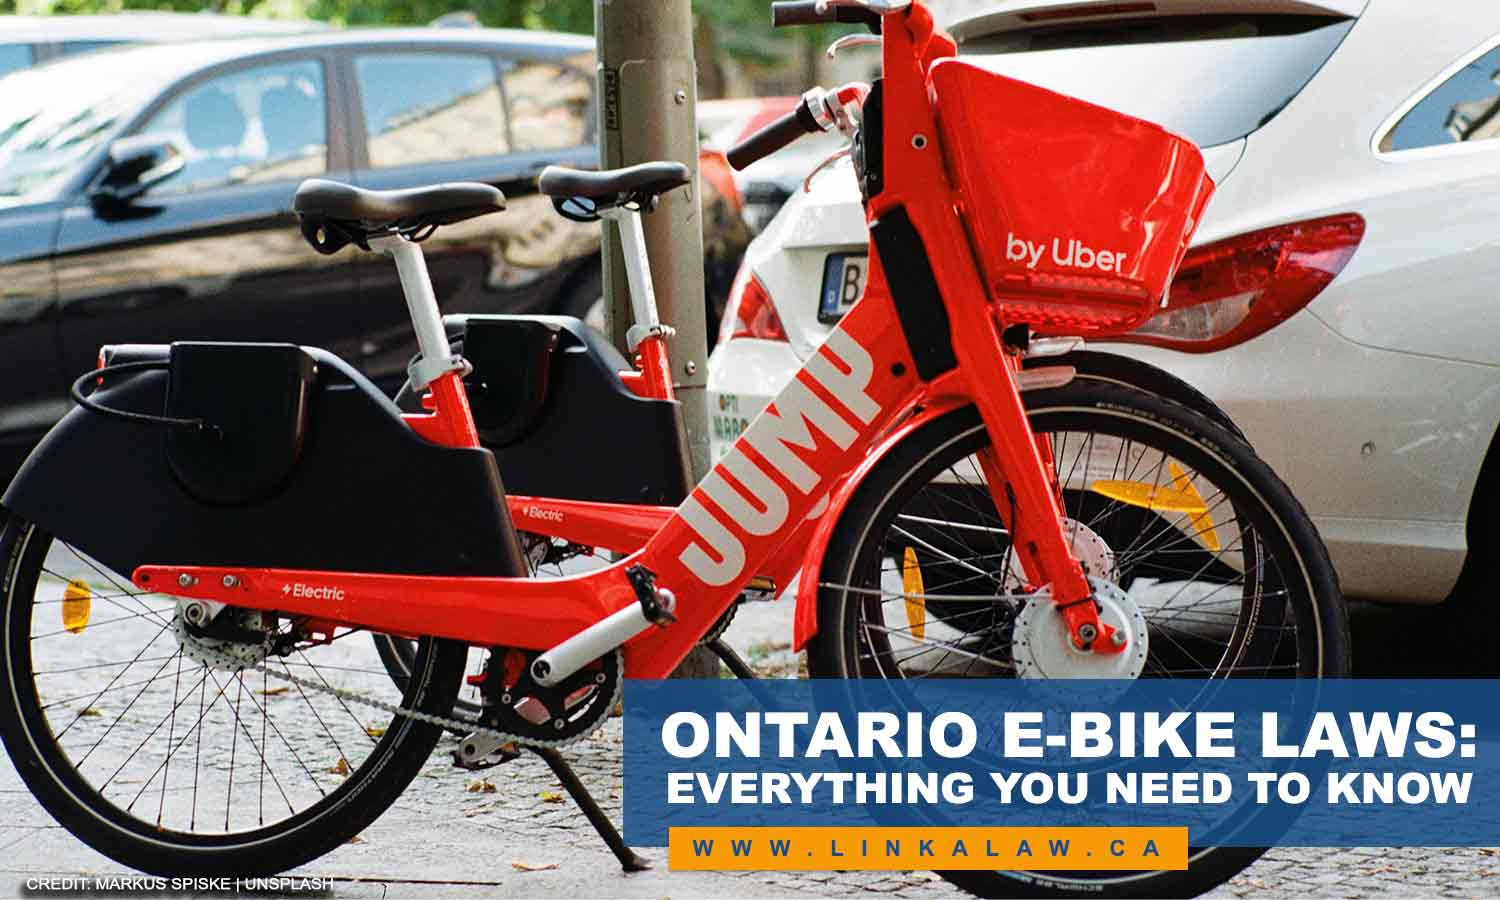 Ontario E-Bike Laws